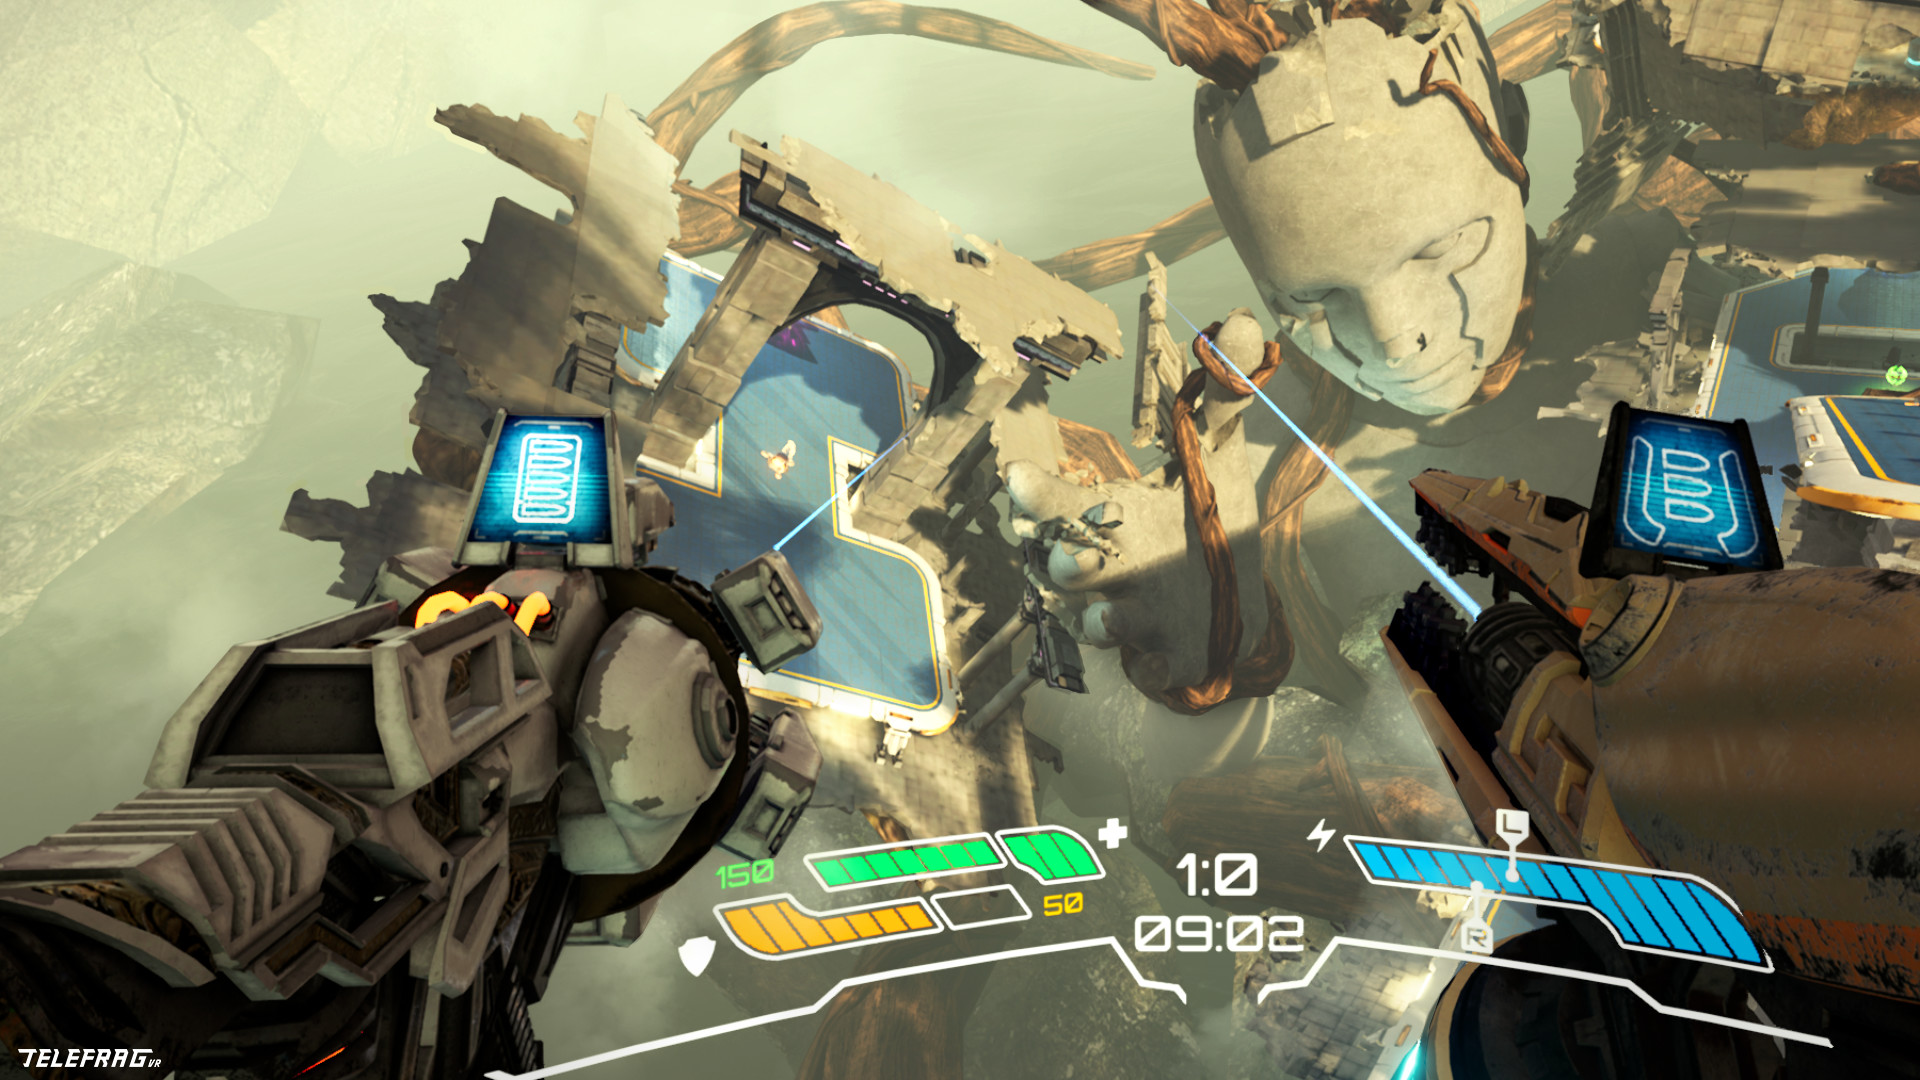 Arena Shooter Telefrag to Launch on PC VR & PSVR Next Week, Trailer Here